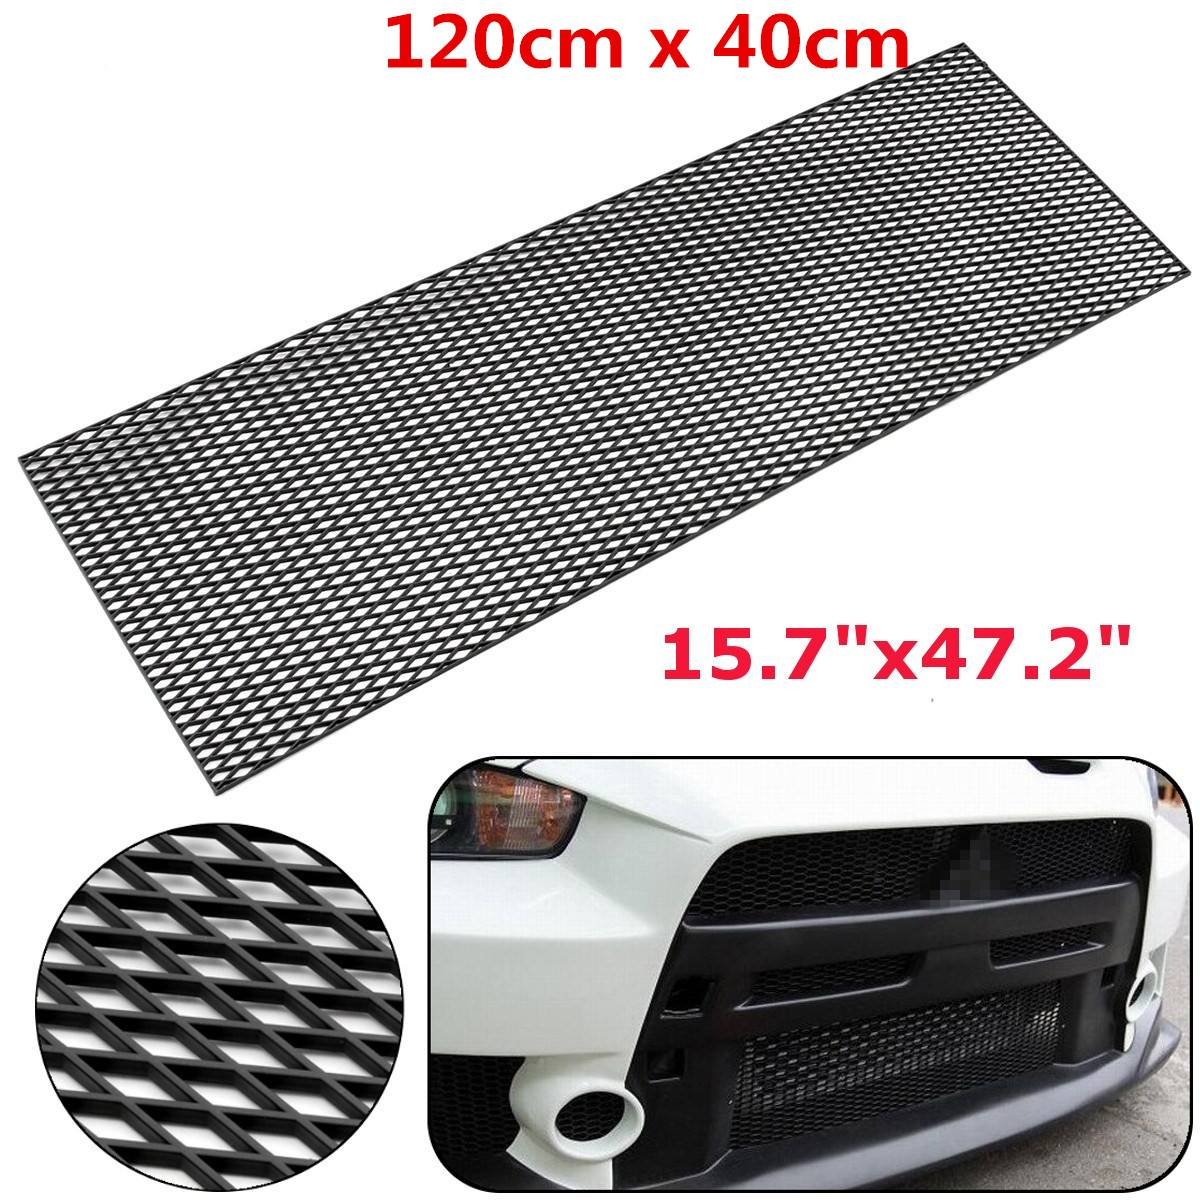 Universal Car Racing Grill Front Bumper Honeycomb Mesh Grille Hood Vent Air Intake 120x40cm